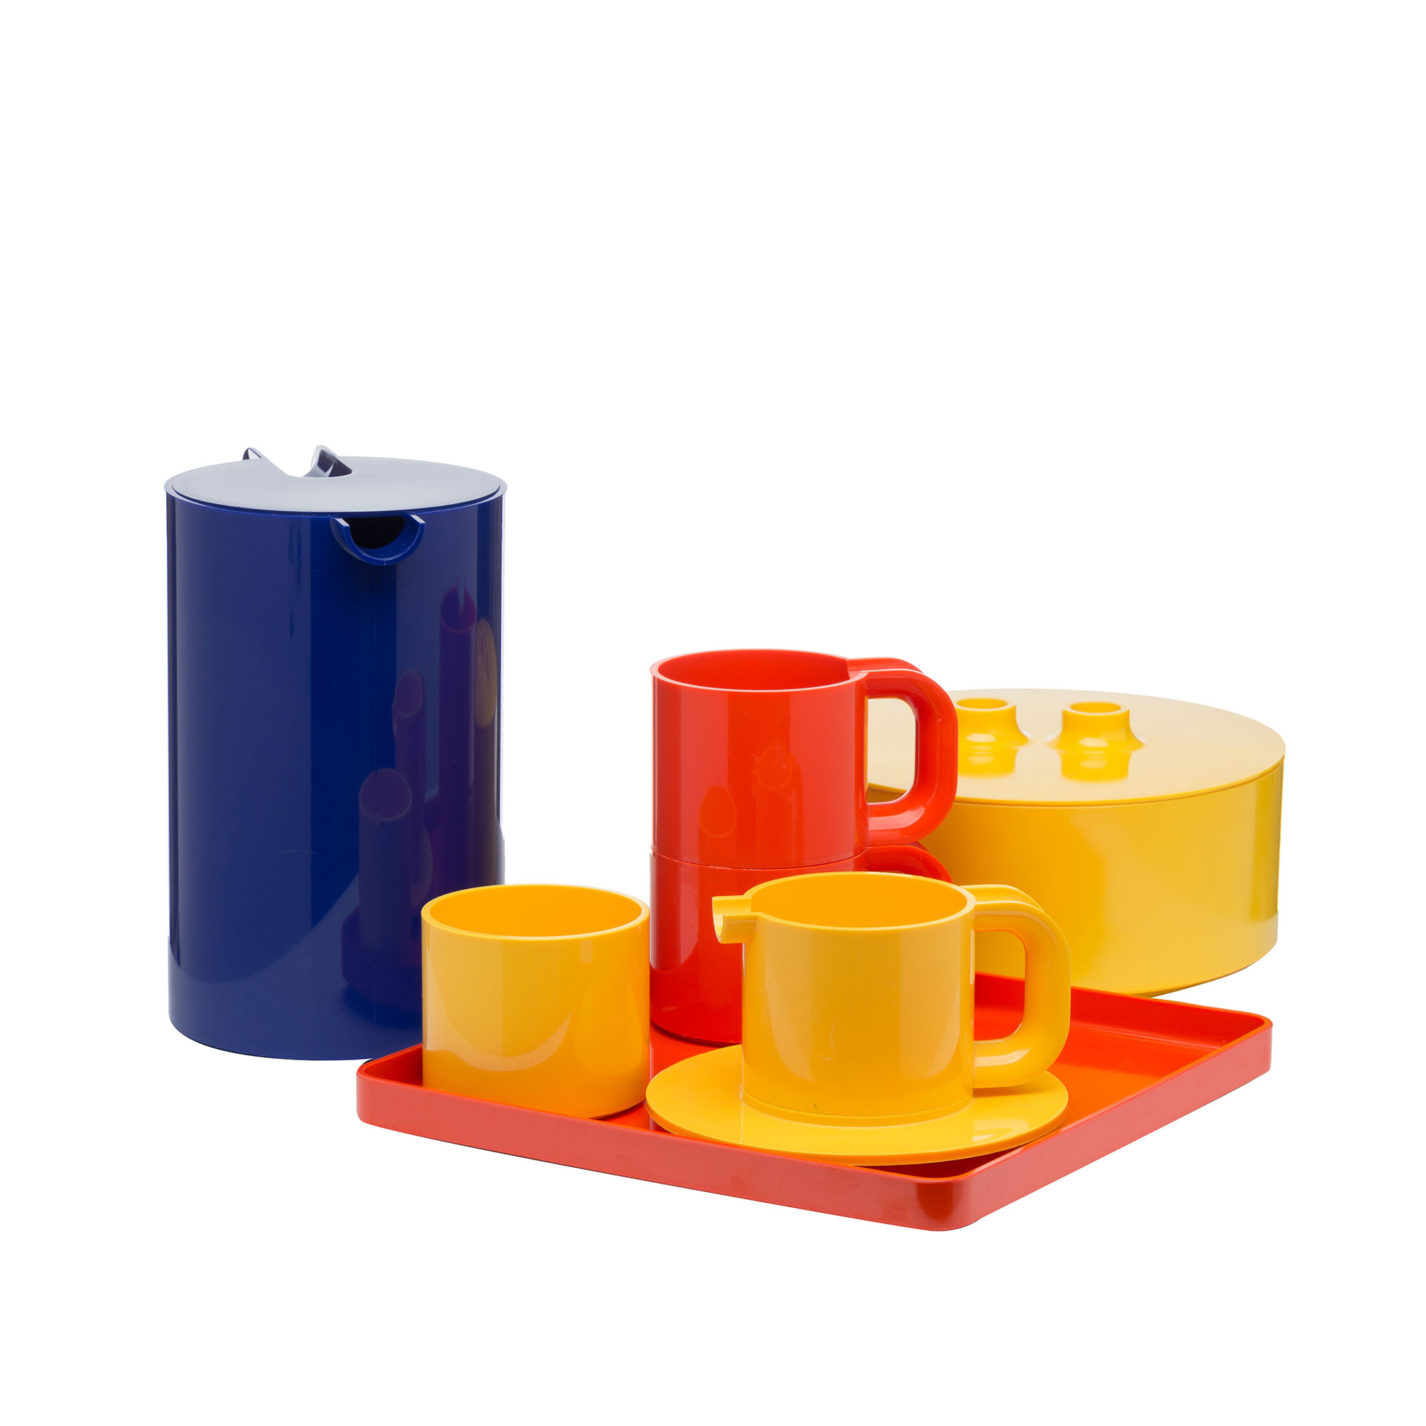 Set of brightly colored plastic dishes.  Cylindrical vessels with small circular plates and a rectangular tray in blue, orange, and yellow.